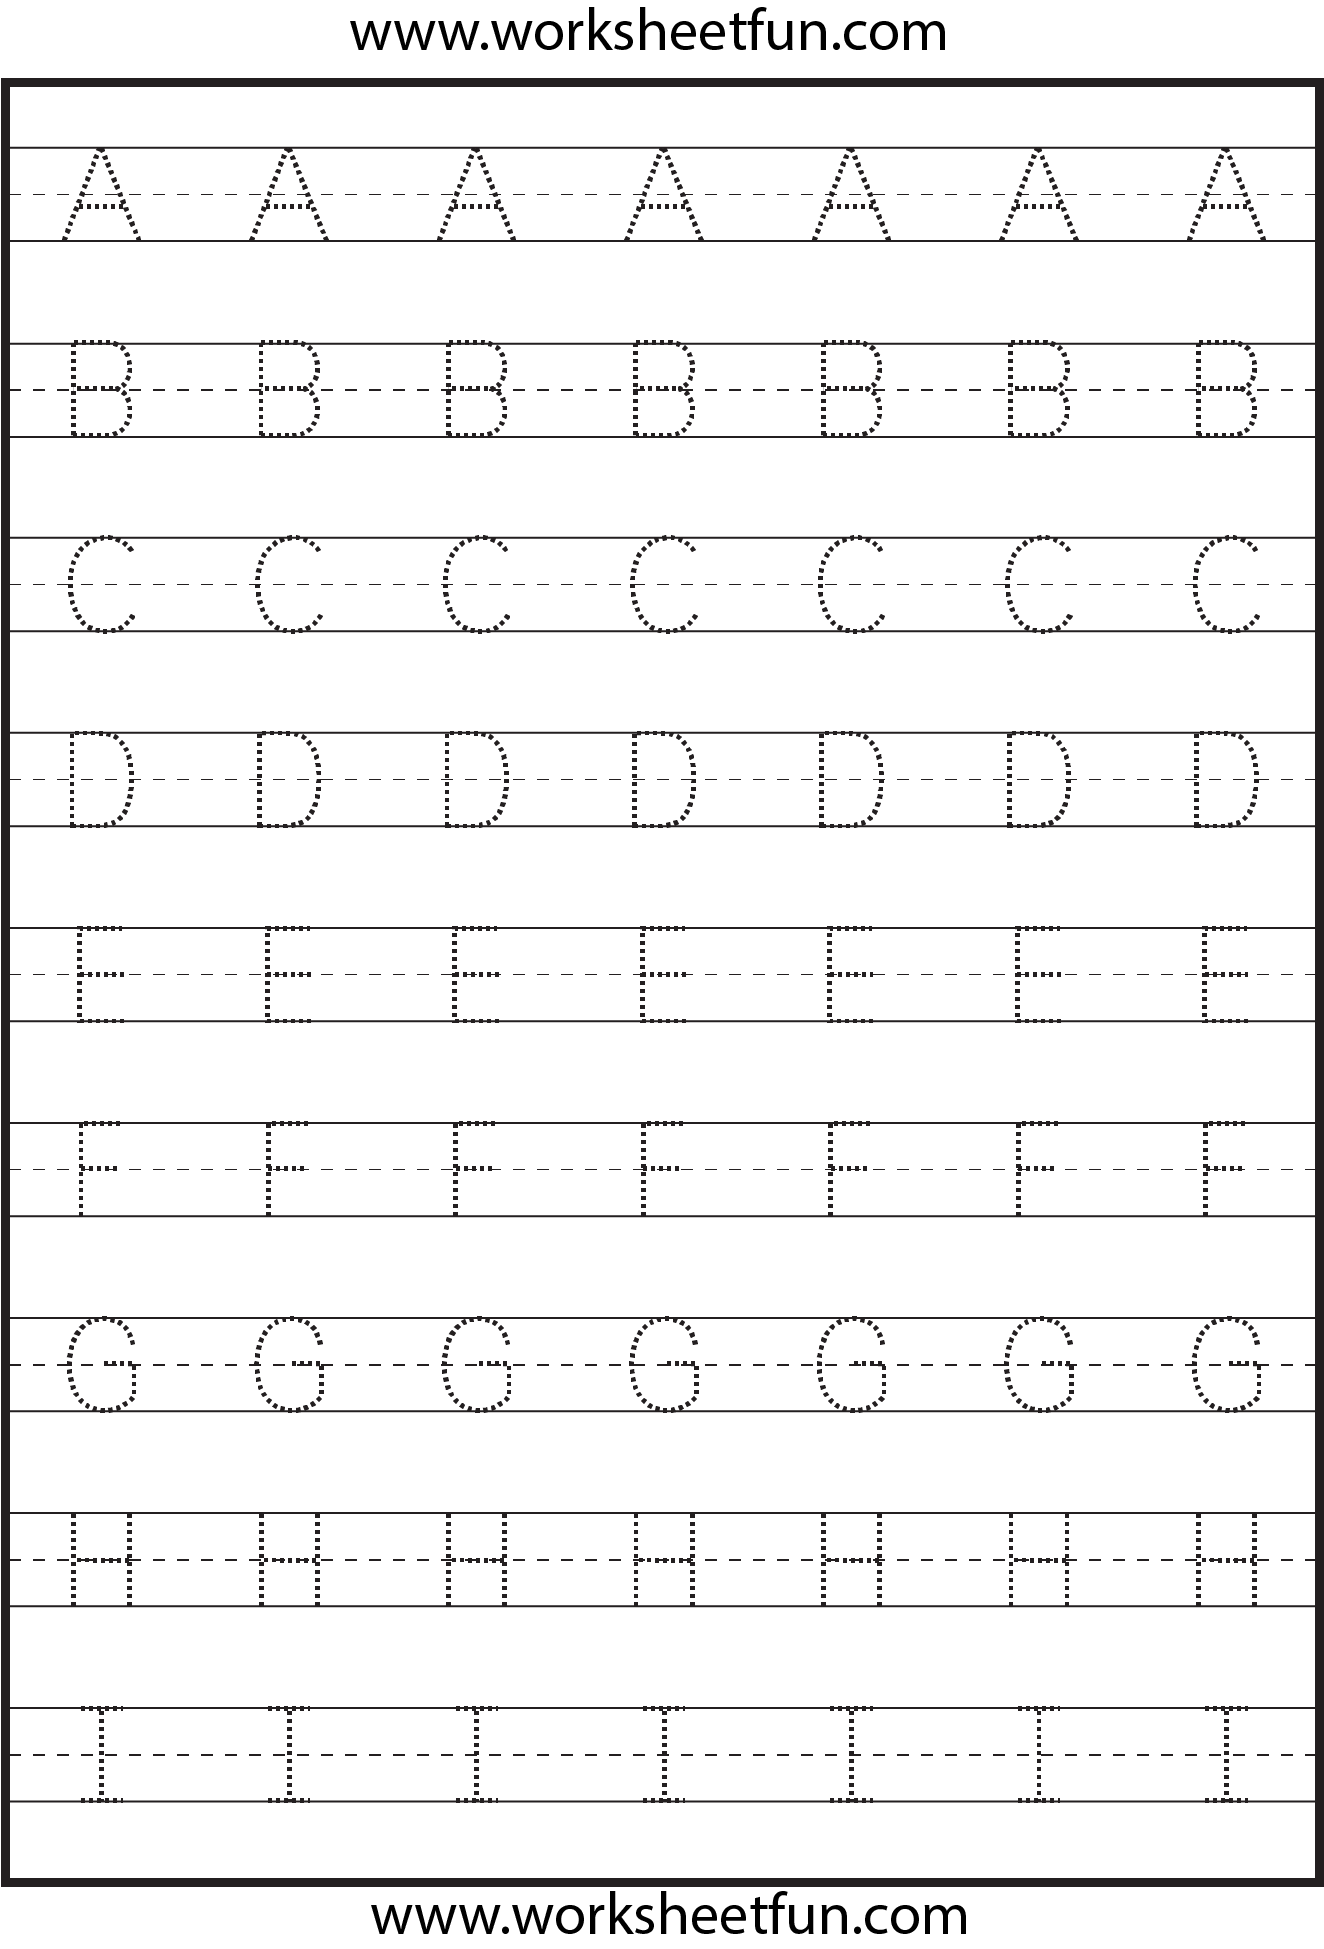 Worksheets Alphabet Worksheets Pdf tracing uppercase letters capital 3 worksheets letter tracing